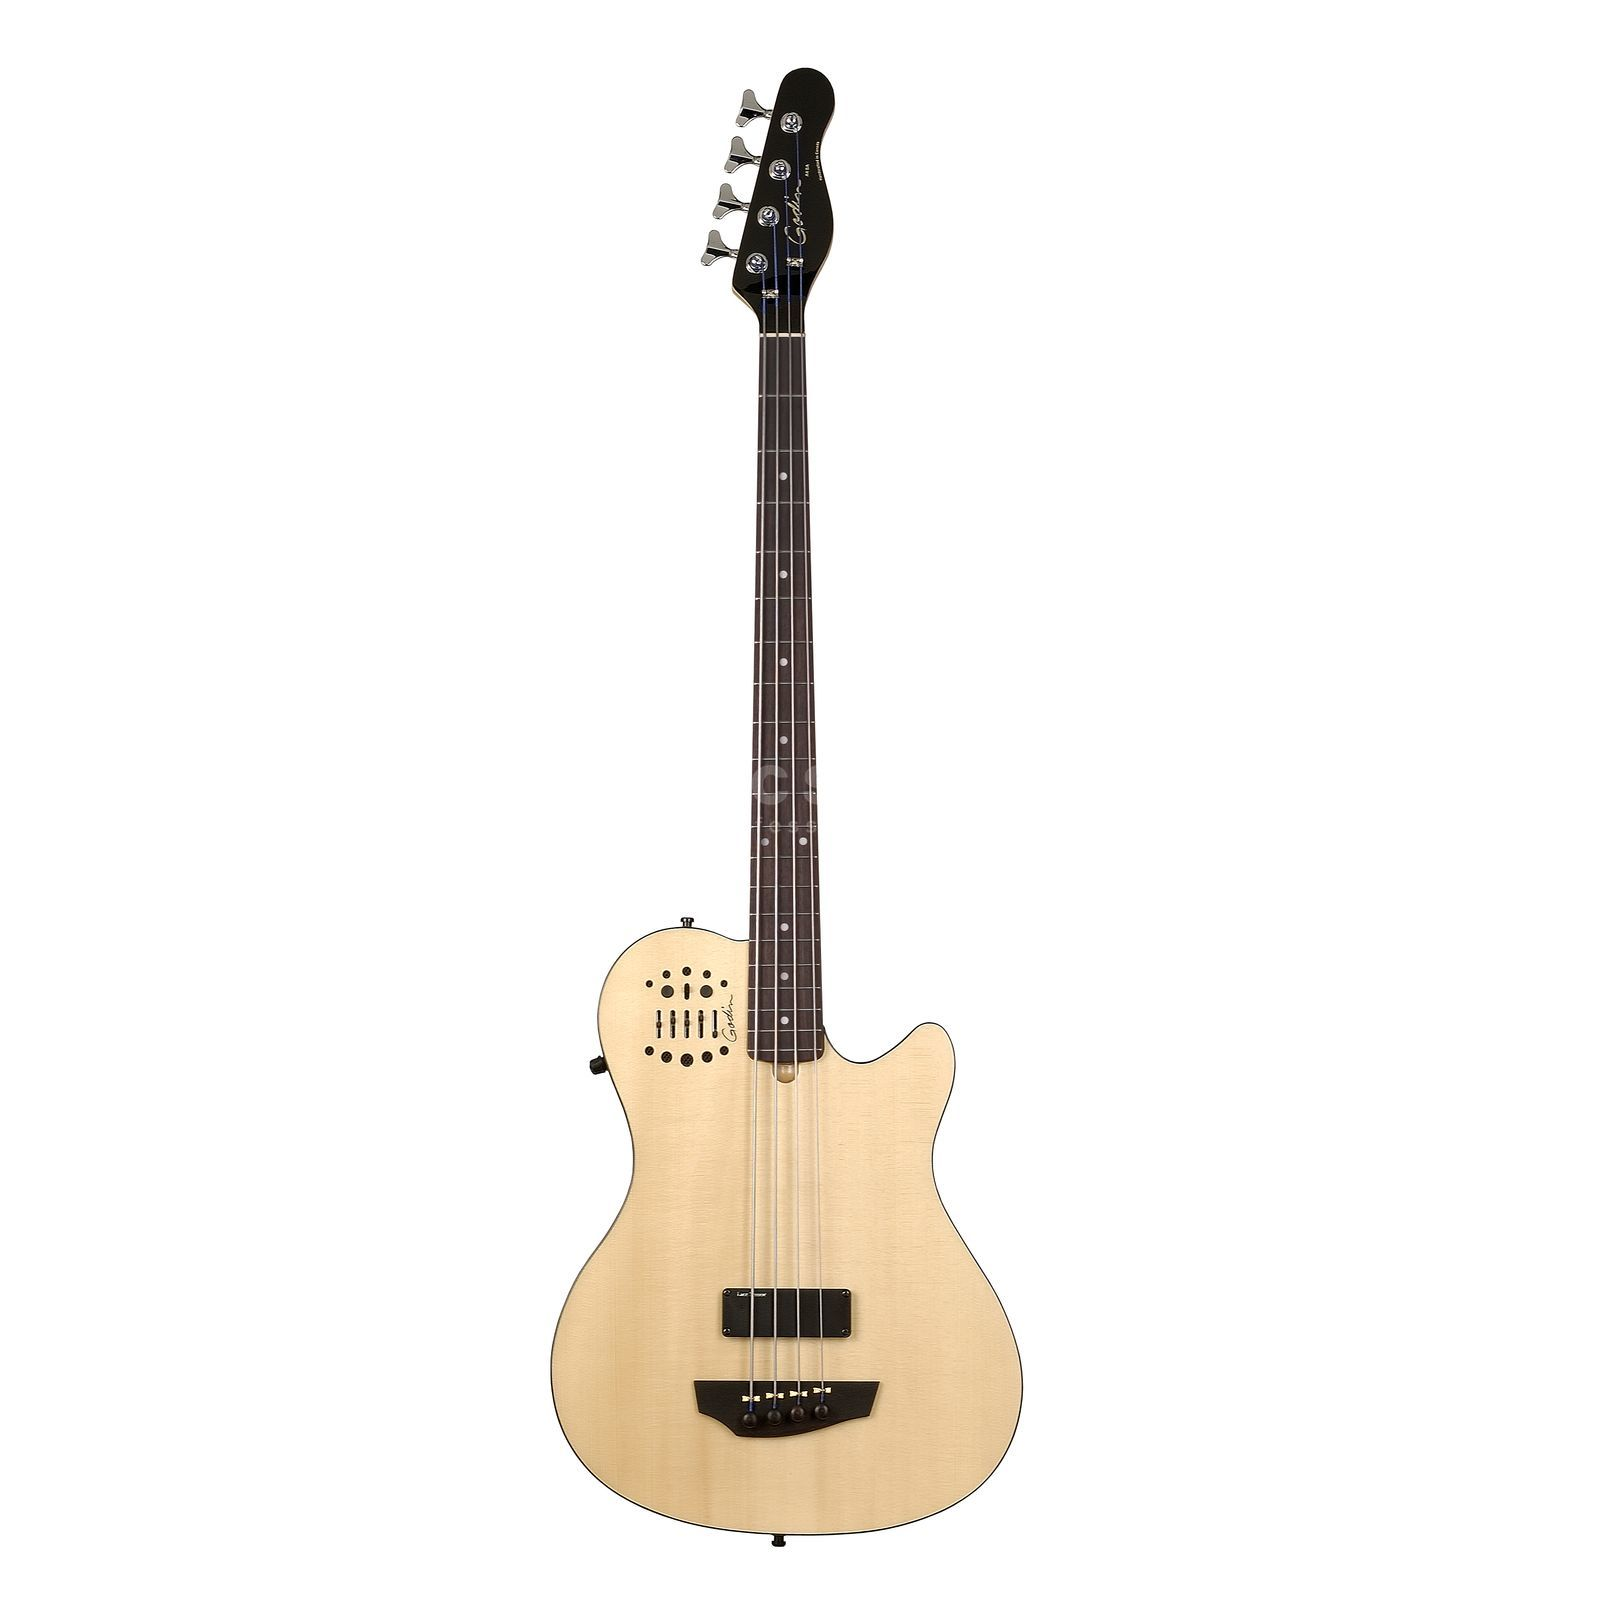 Godin A4 Ultra SA Bass Guitar    Изображение товара